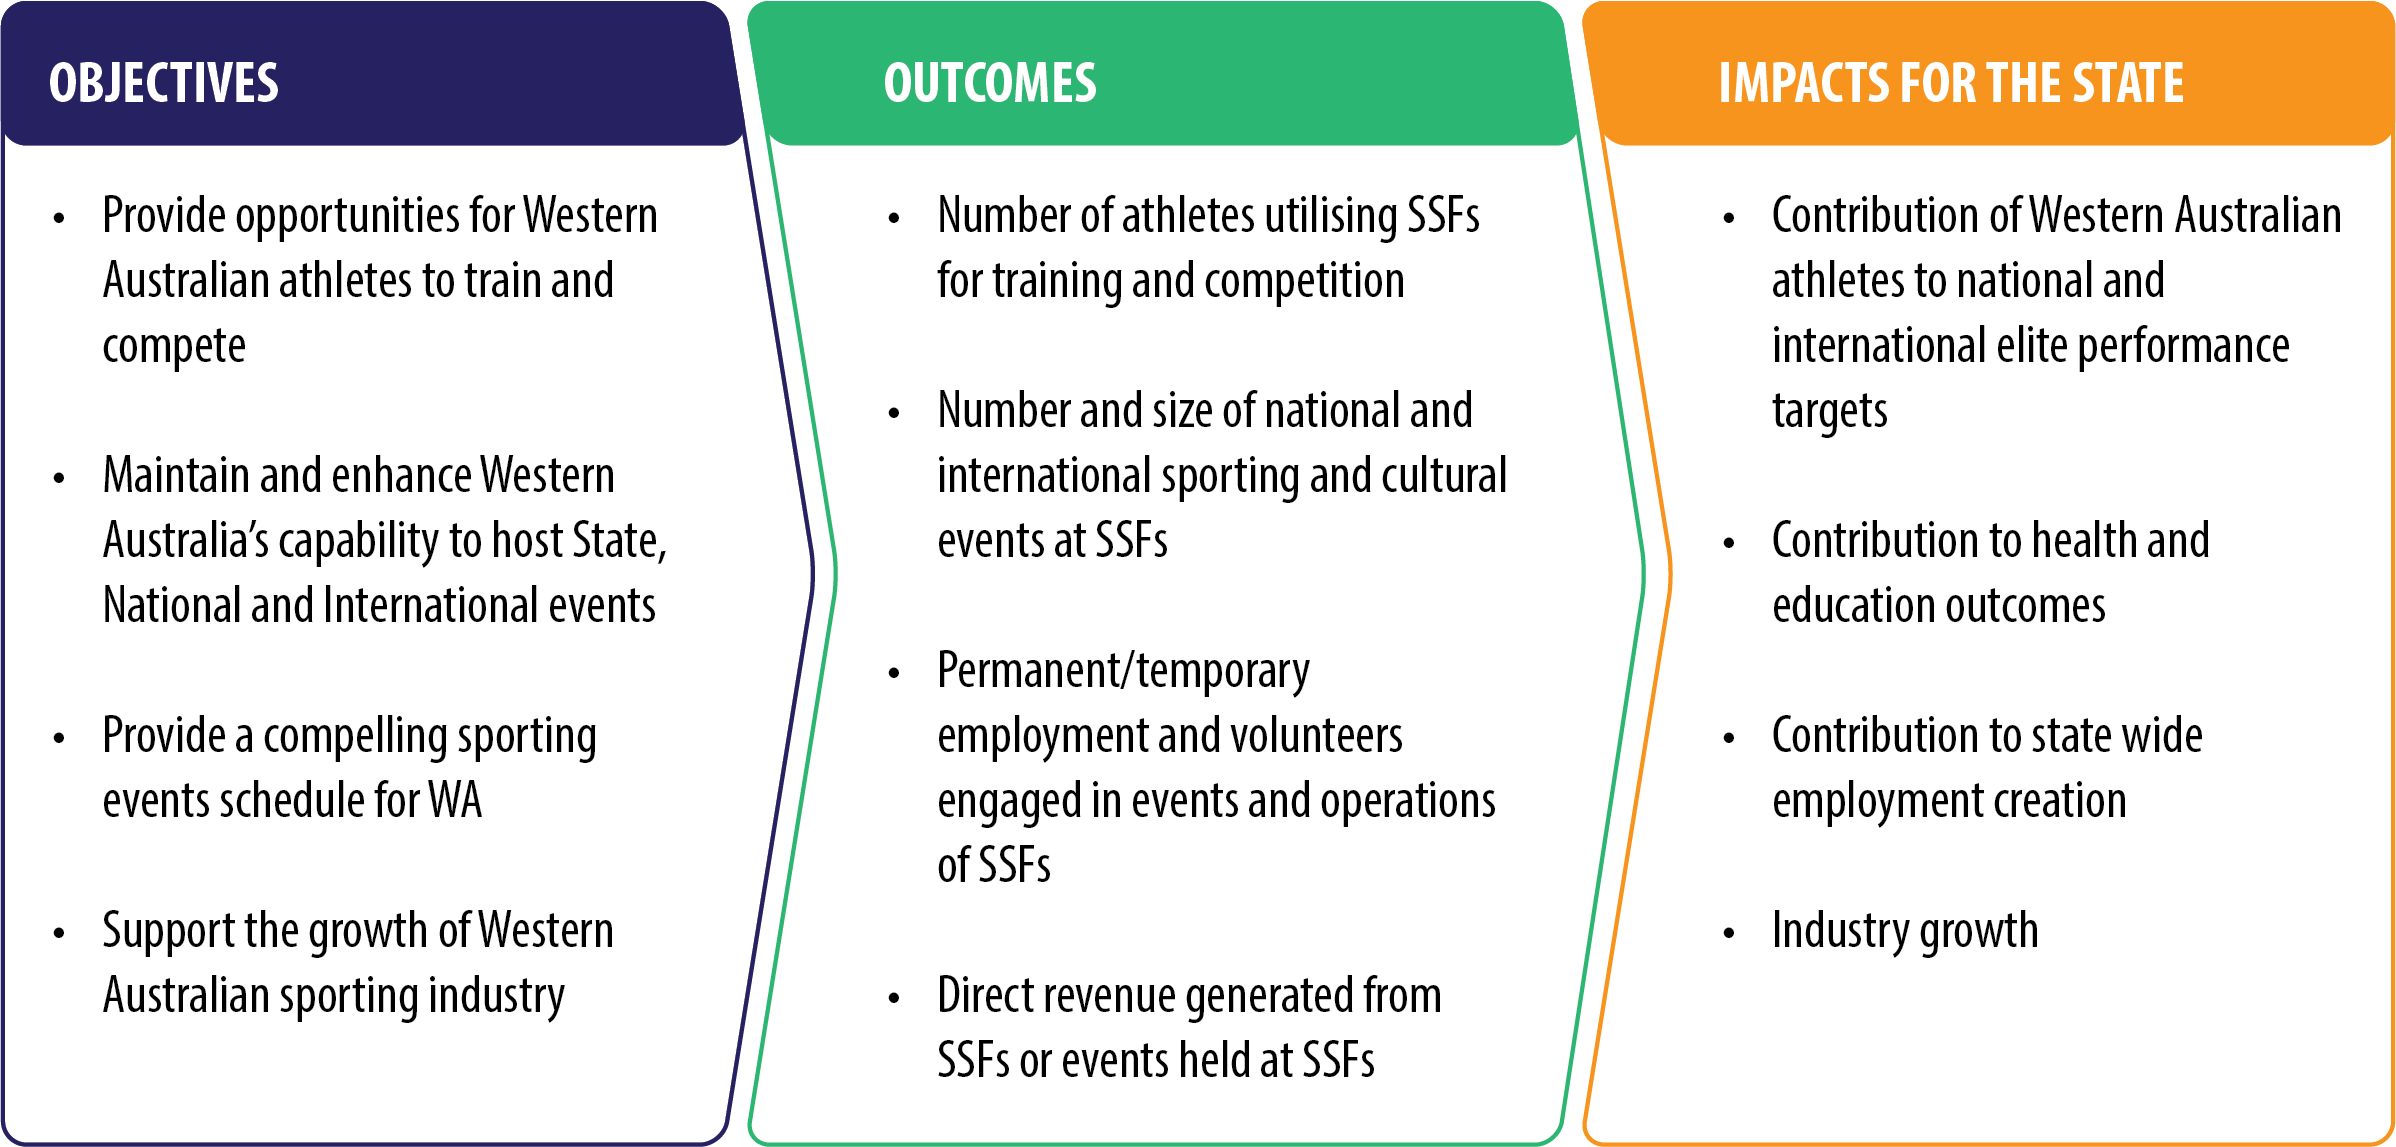 Figure 12. Example Objectives, Outcomes and Impacts